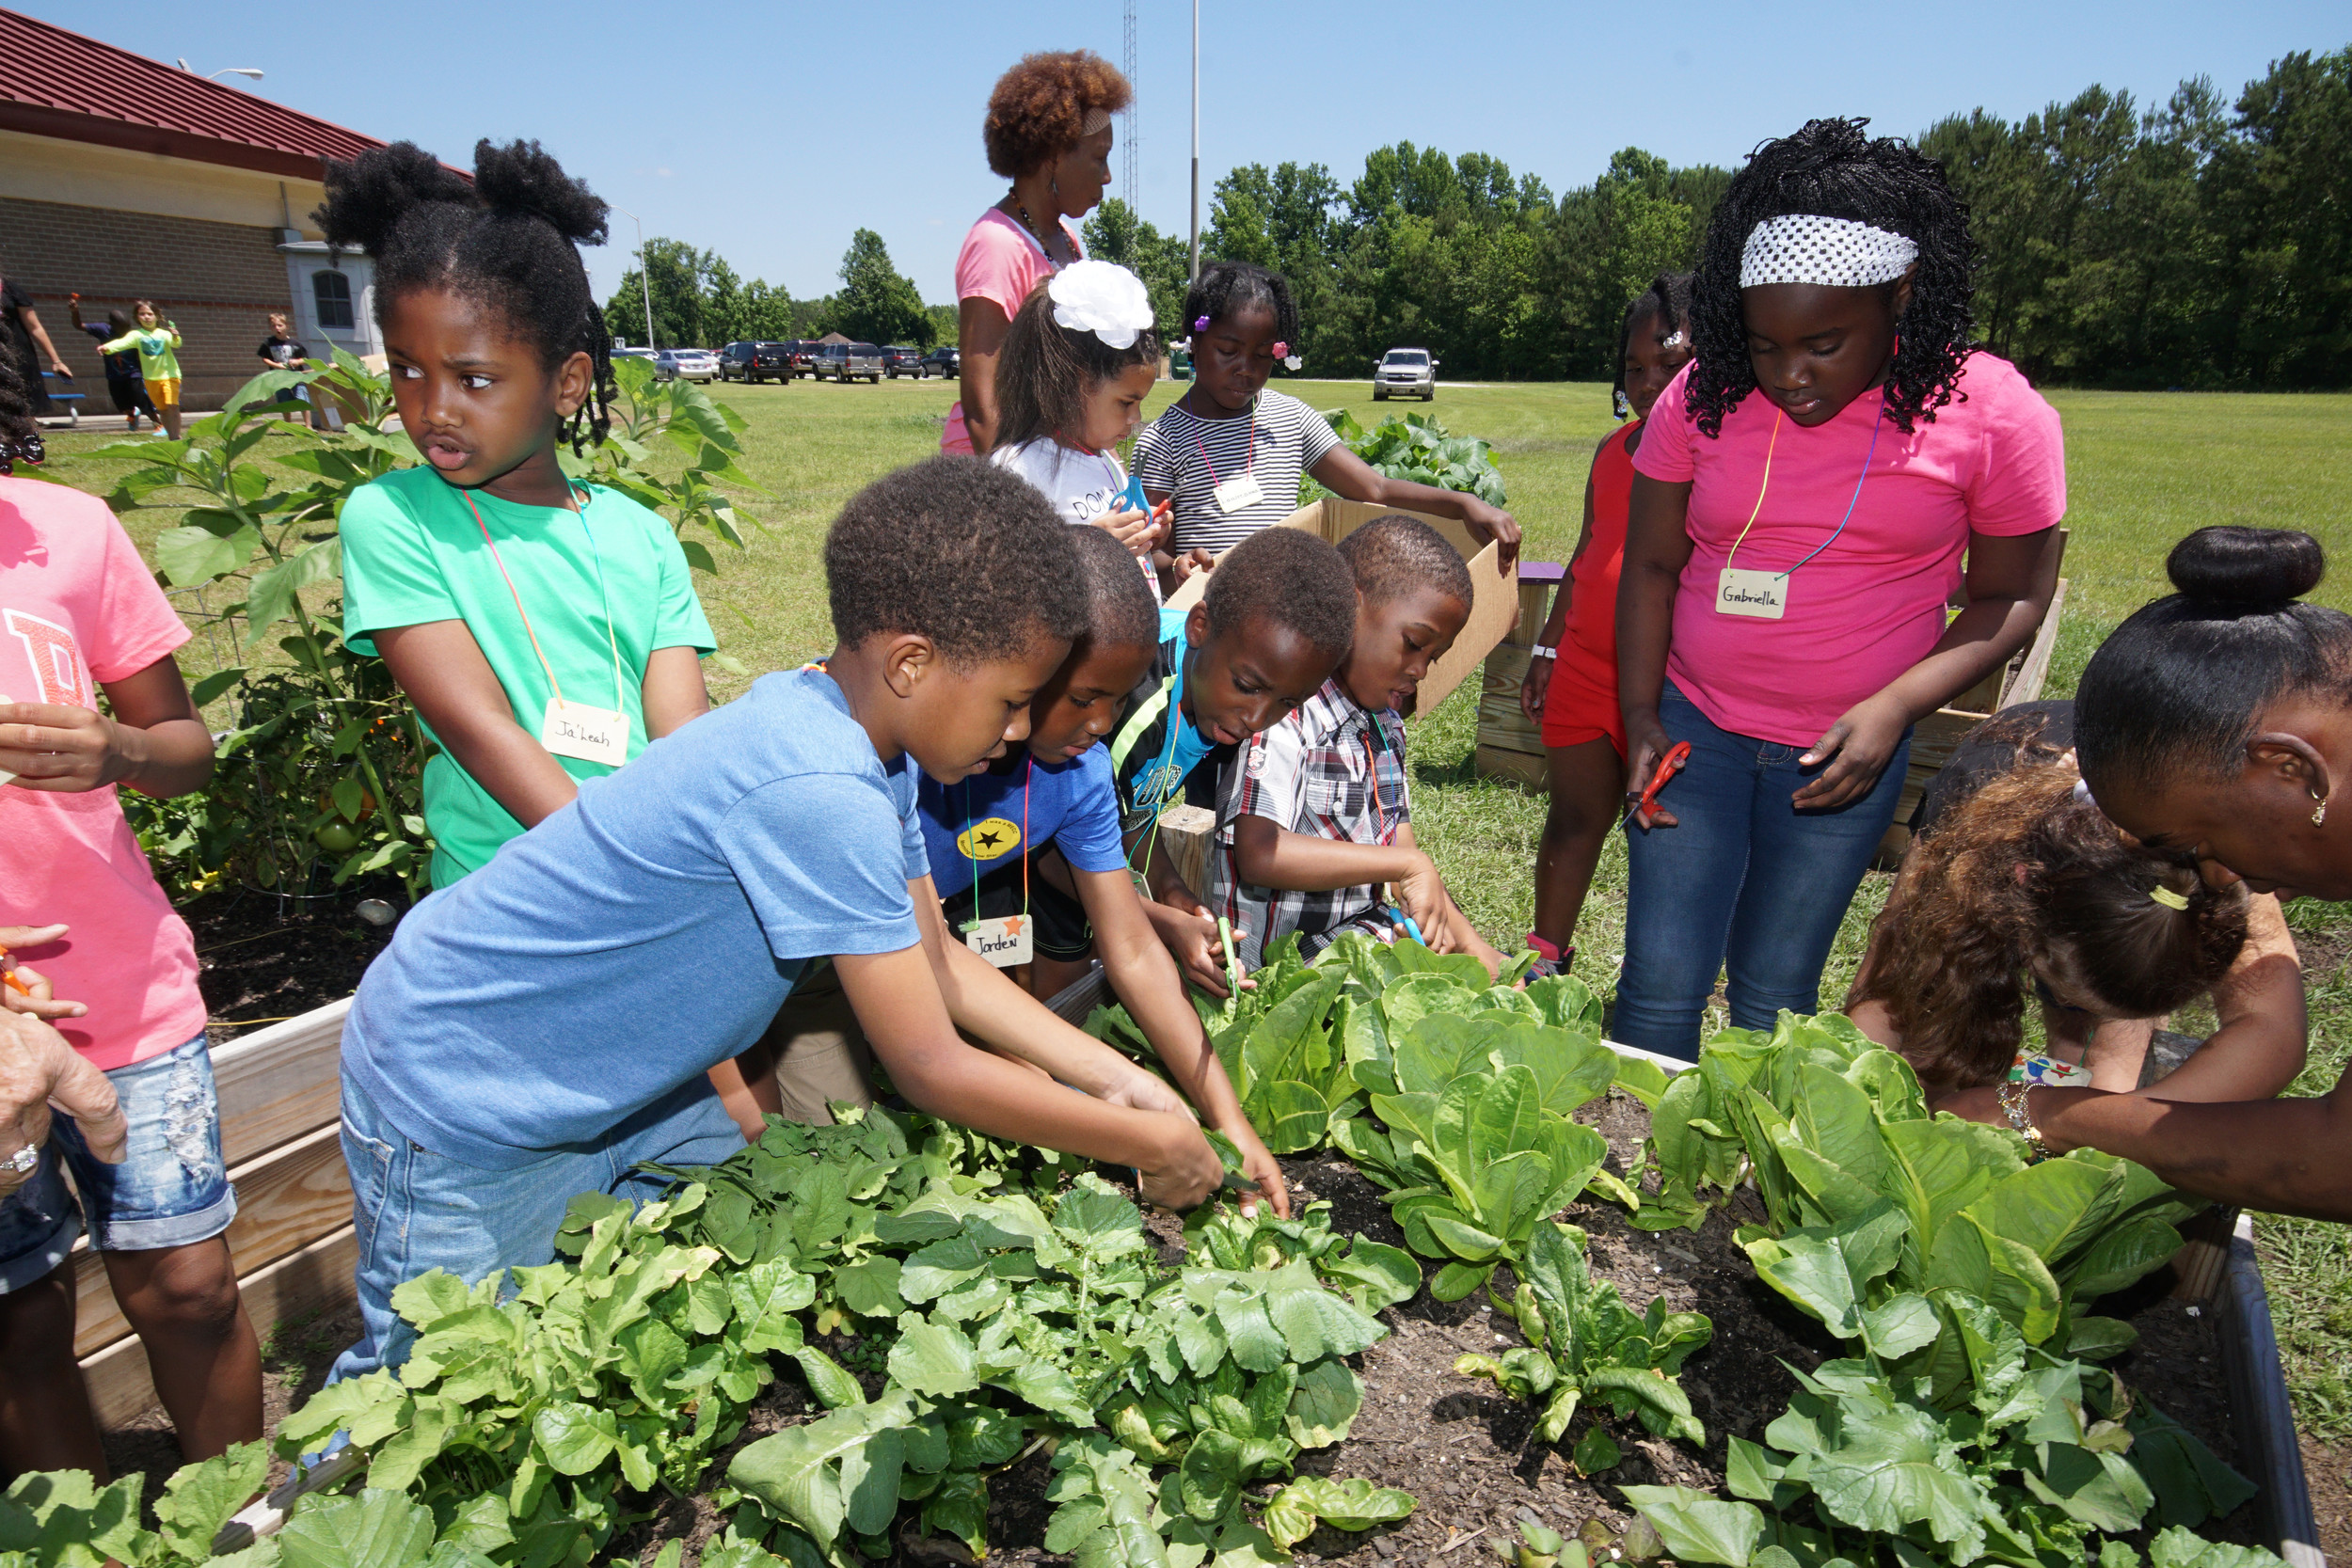 Manning Early Childhood Center first-graders relished harvesting the crops they helped raise behind the school.